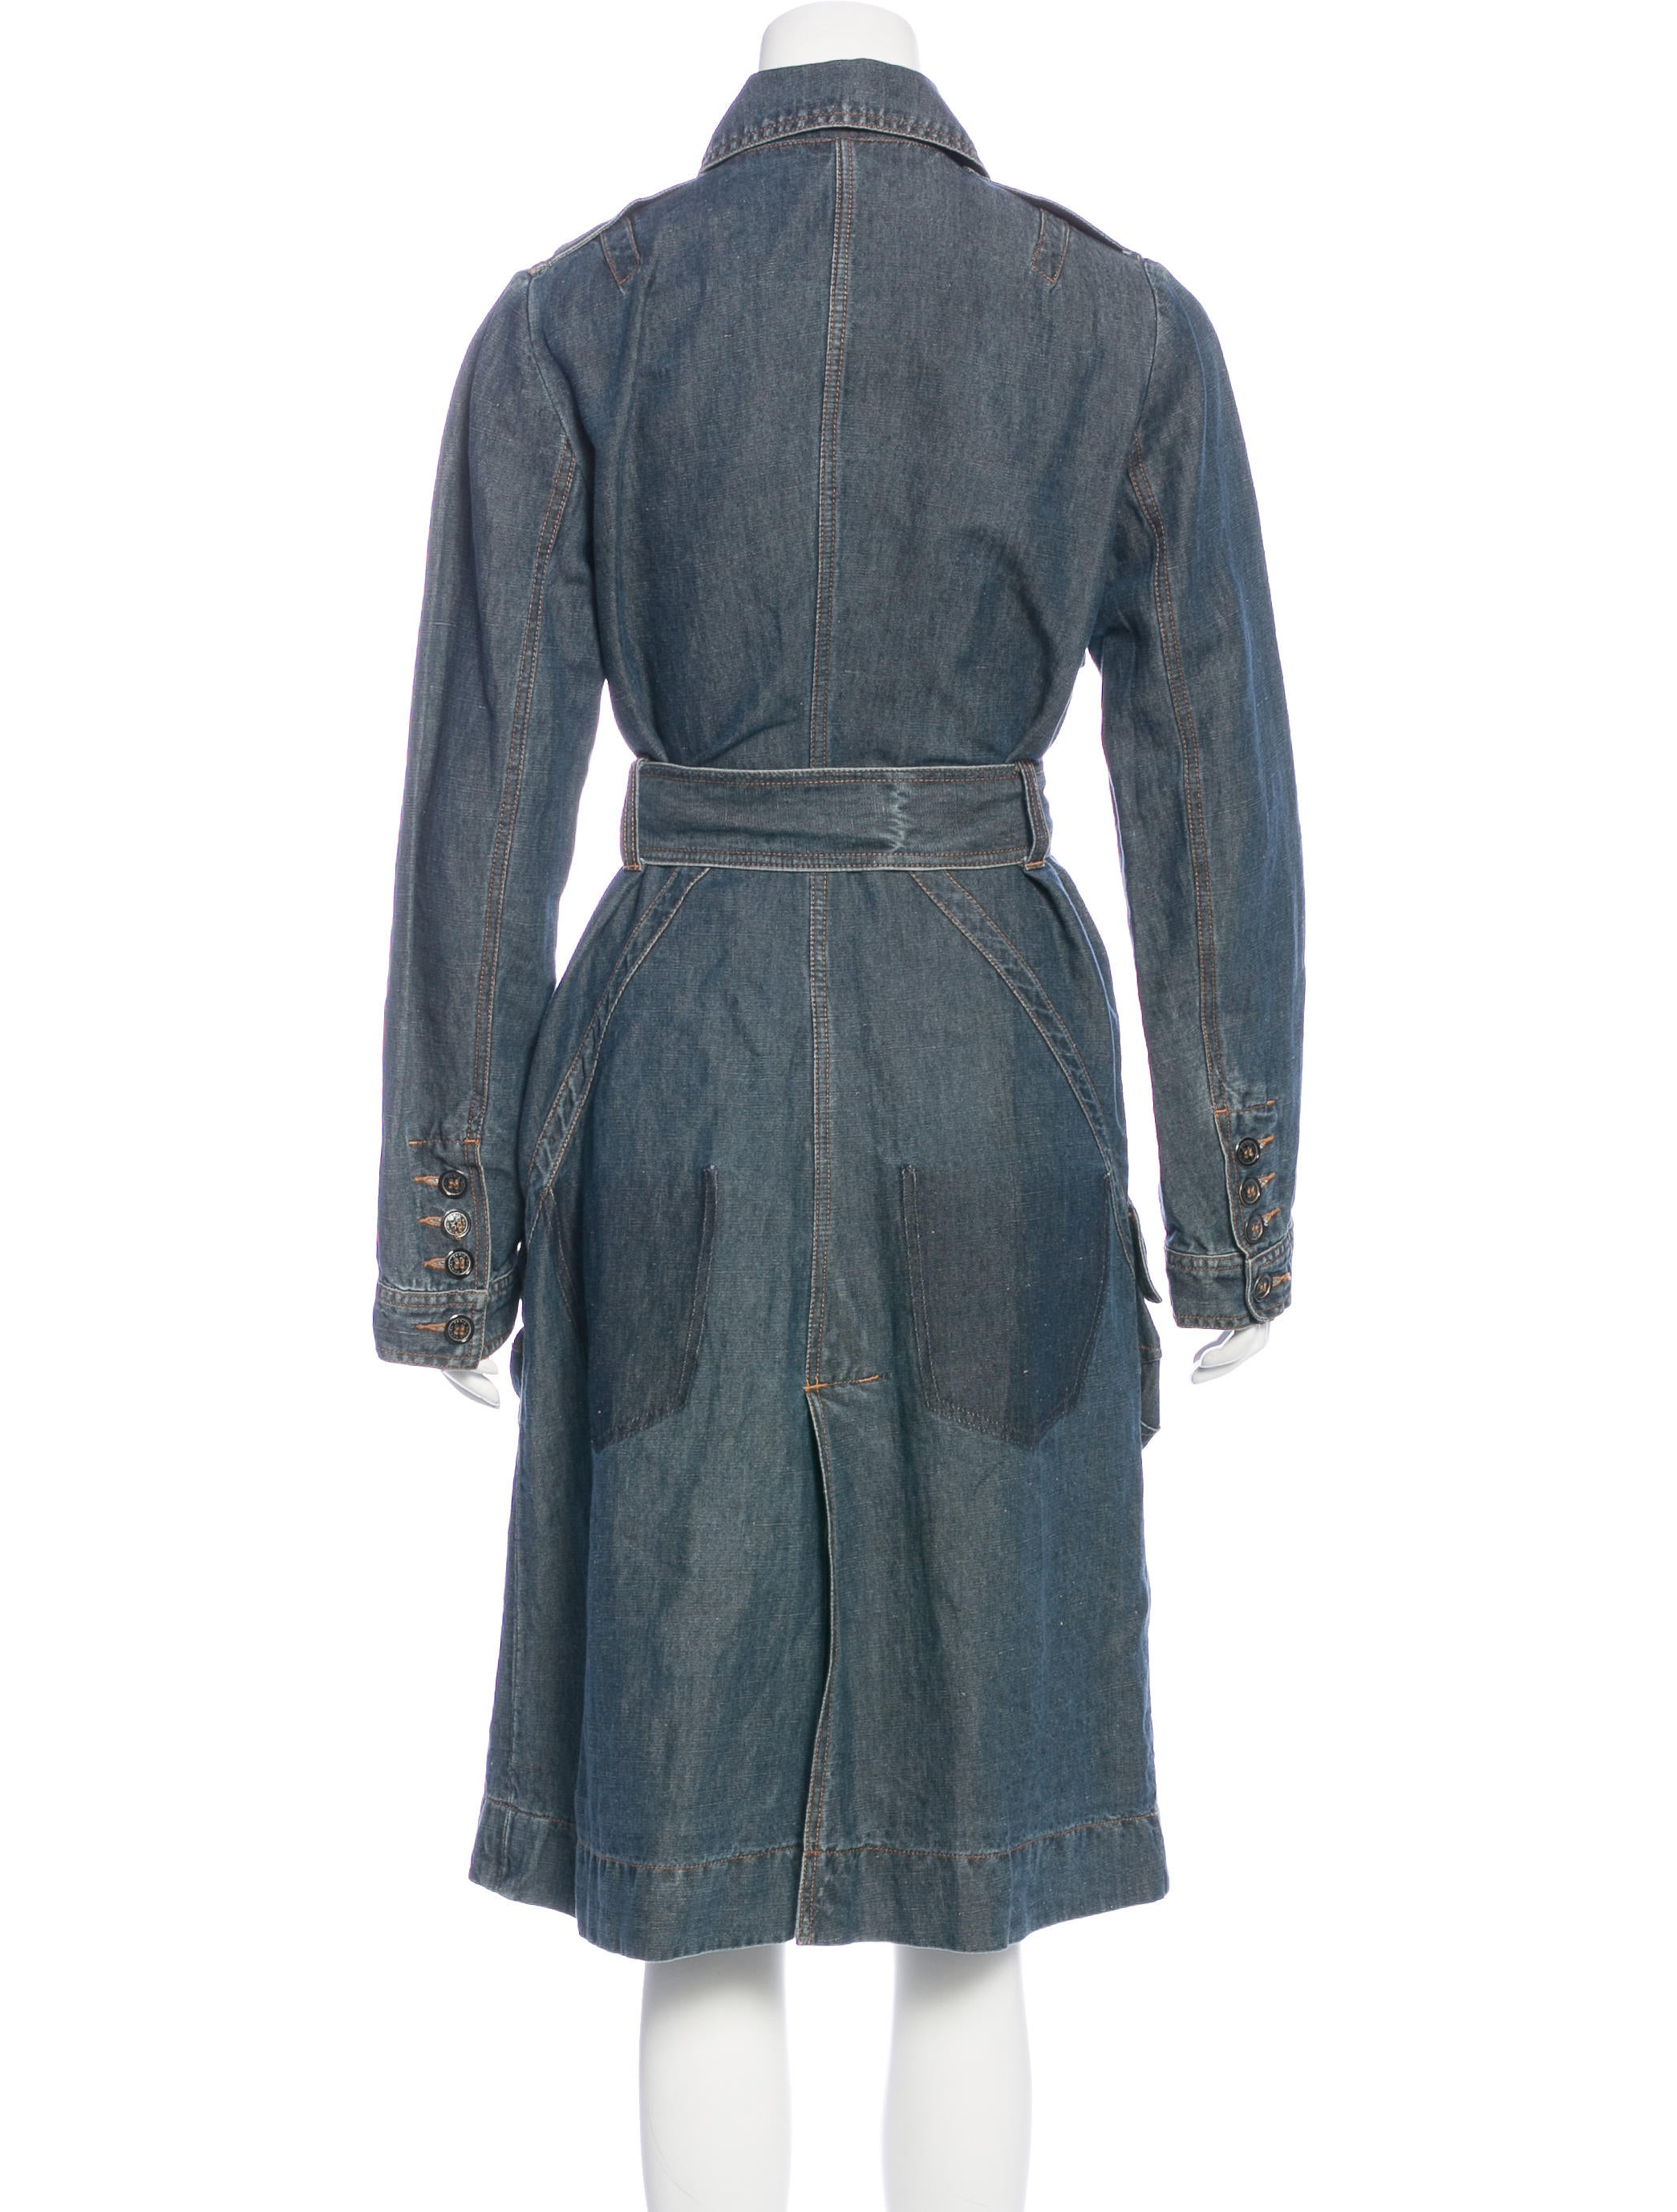 Shop the Women's Denim Trench Coat at ingmecanica.ml and see the entire selection of Women's Jackets. Free Shipping Available.